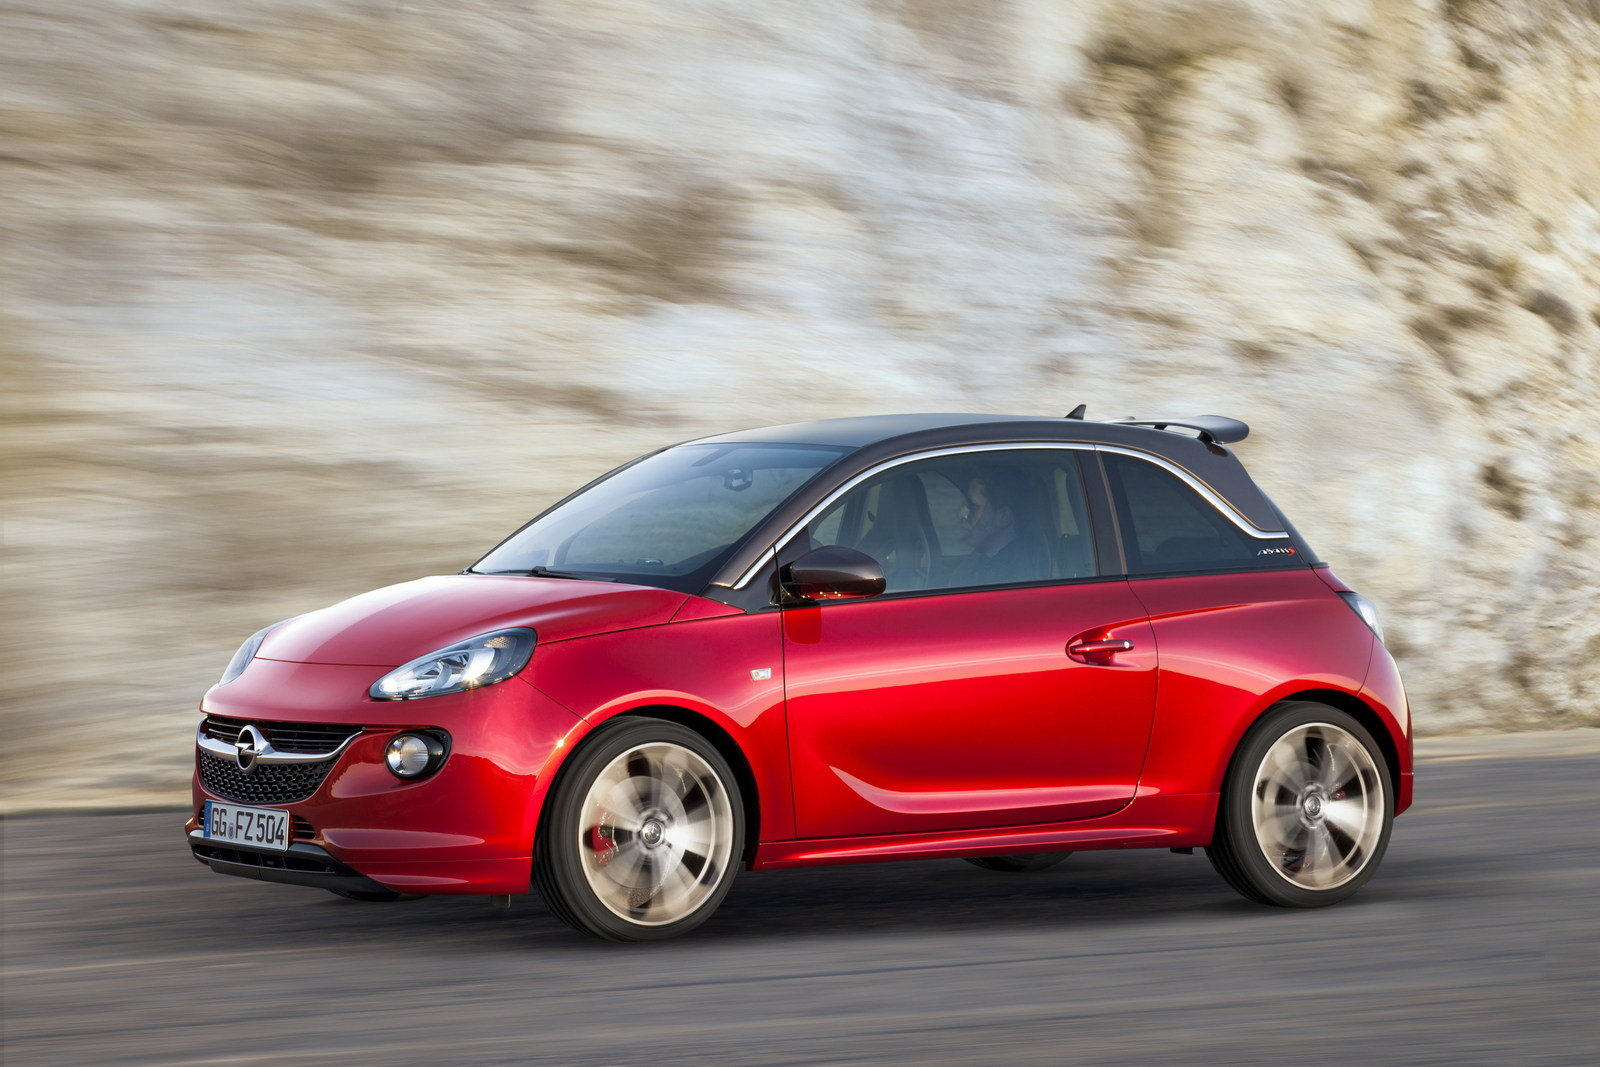 2014 opel adam s review gallery top speed. Black Bedroom Furniture Sets. Home Design Ideas